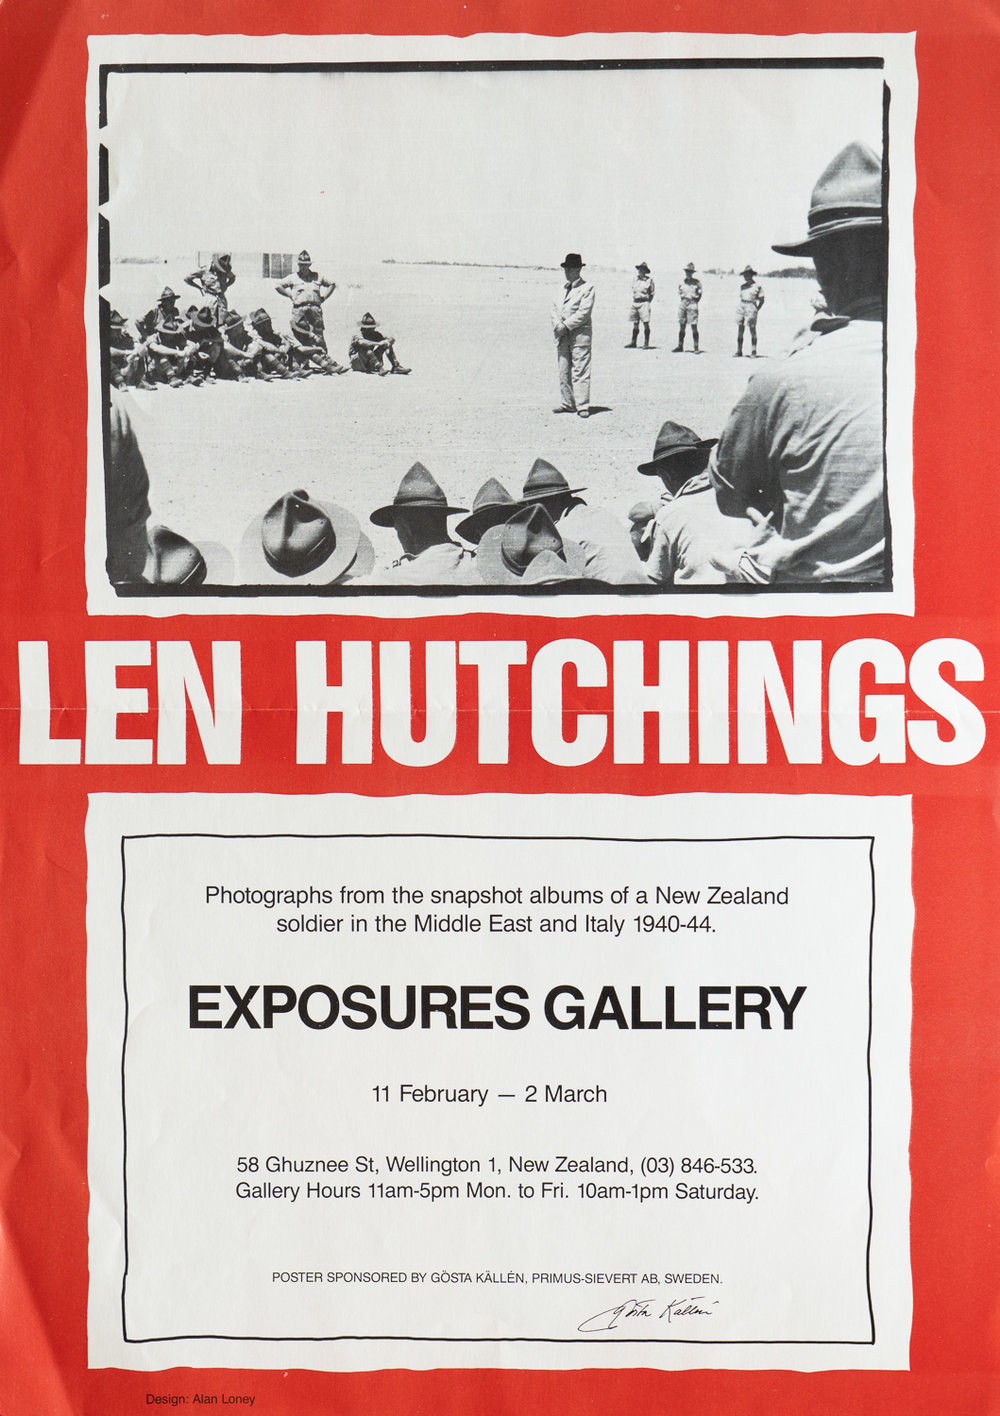 Len Hutchings33211 - Chocolate Soldier11 February – 2 March, 1985